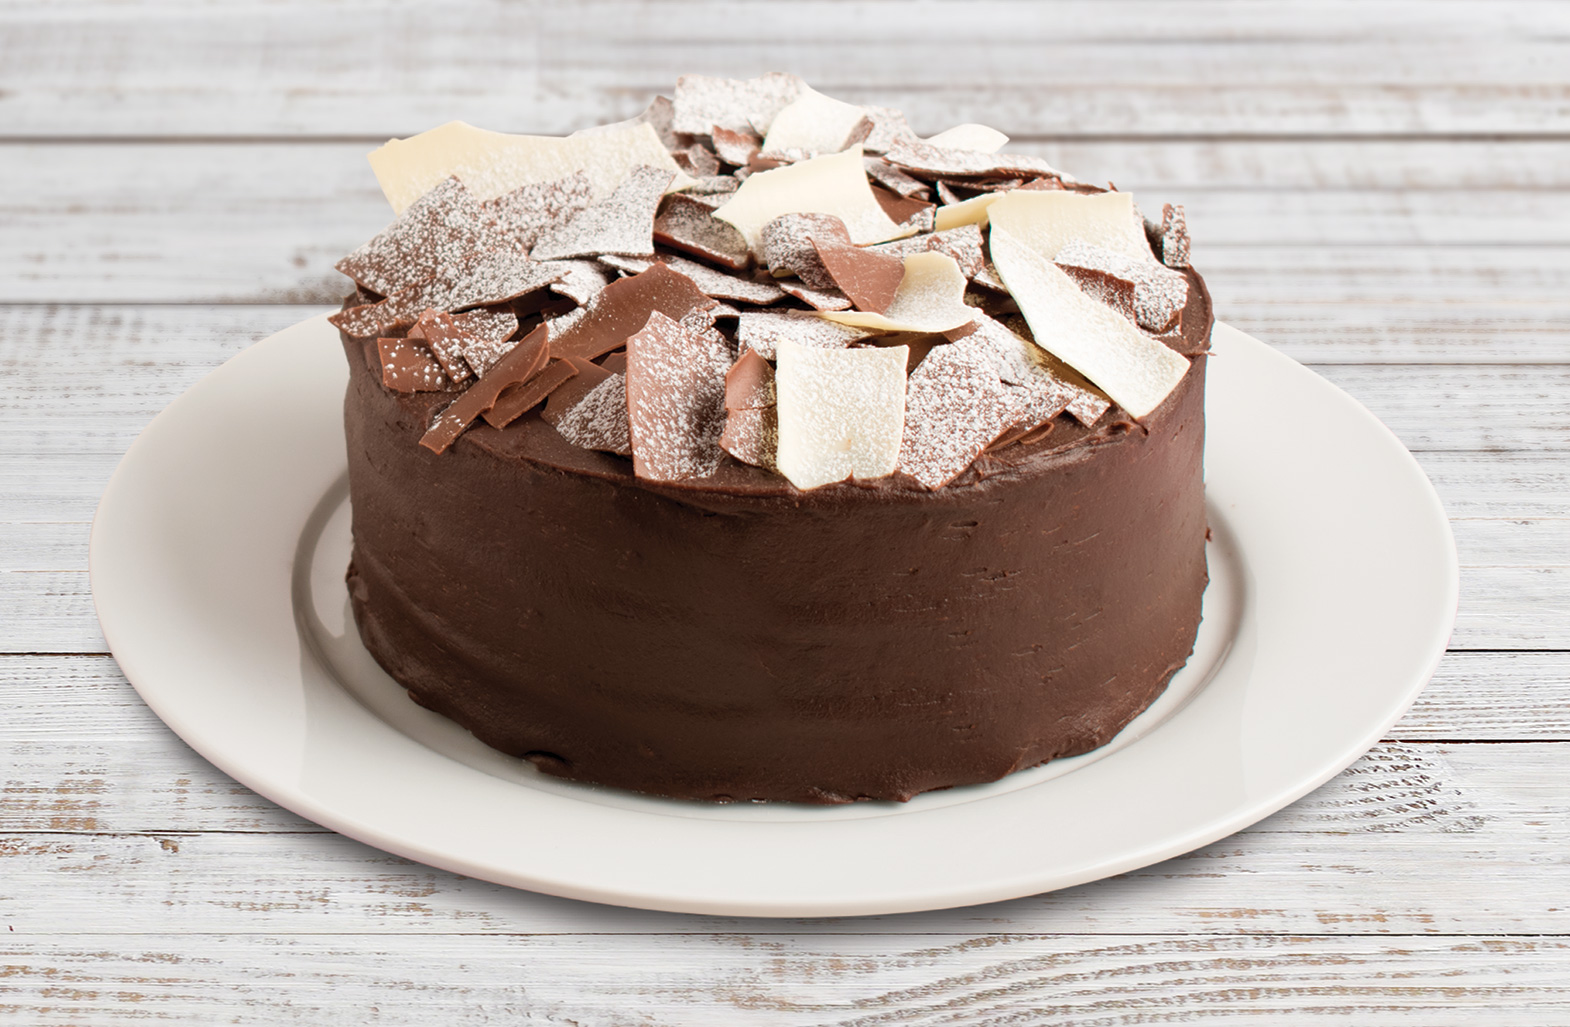 Mary Berry's chocolate celebration cake (Finsbury Food Group/PA)